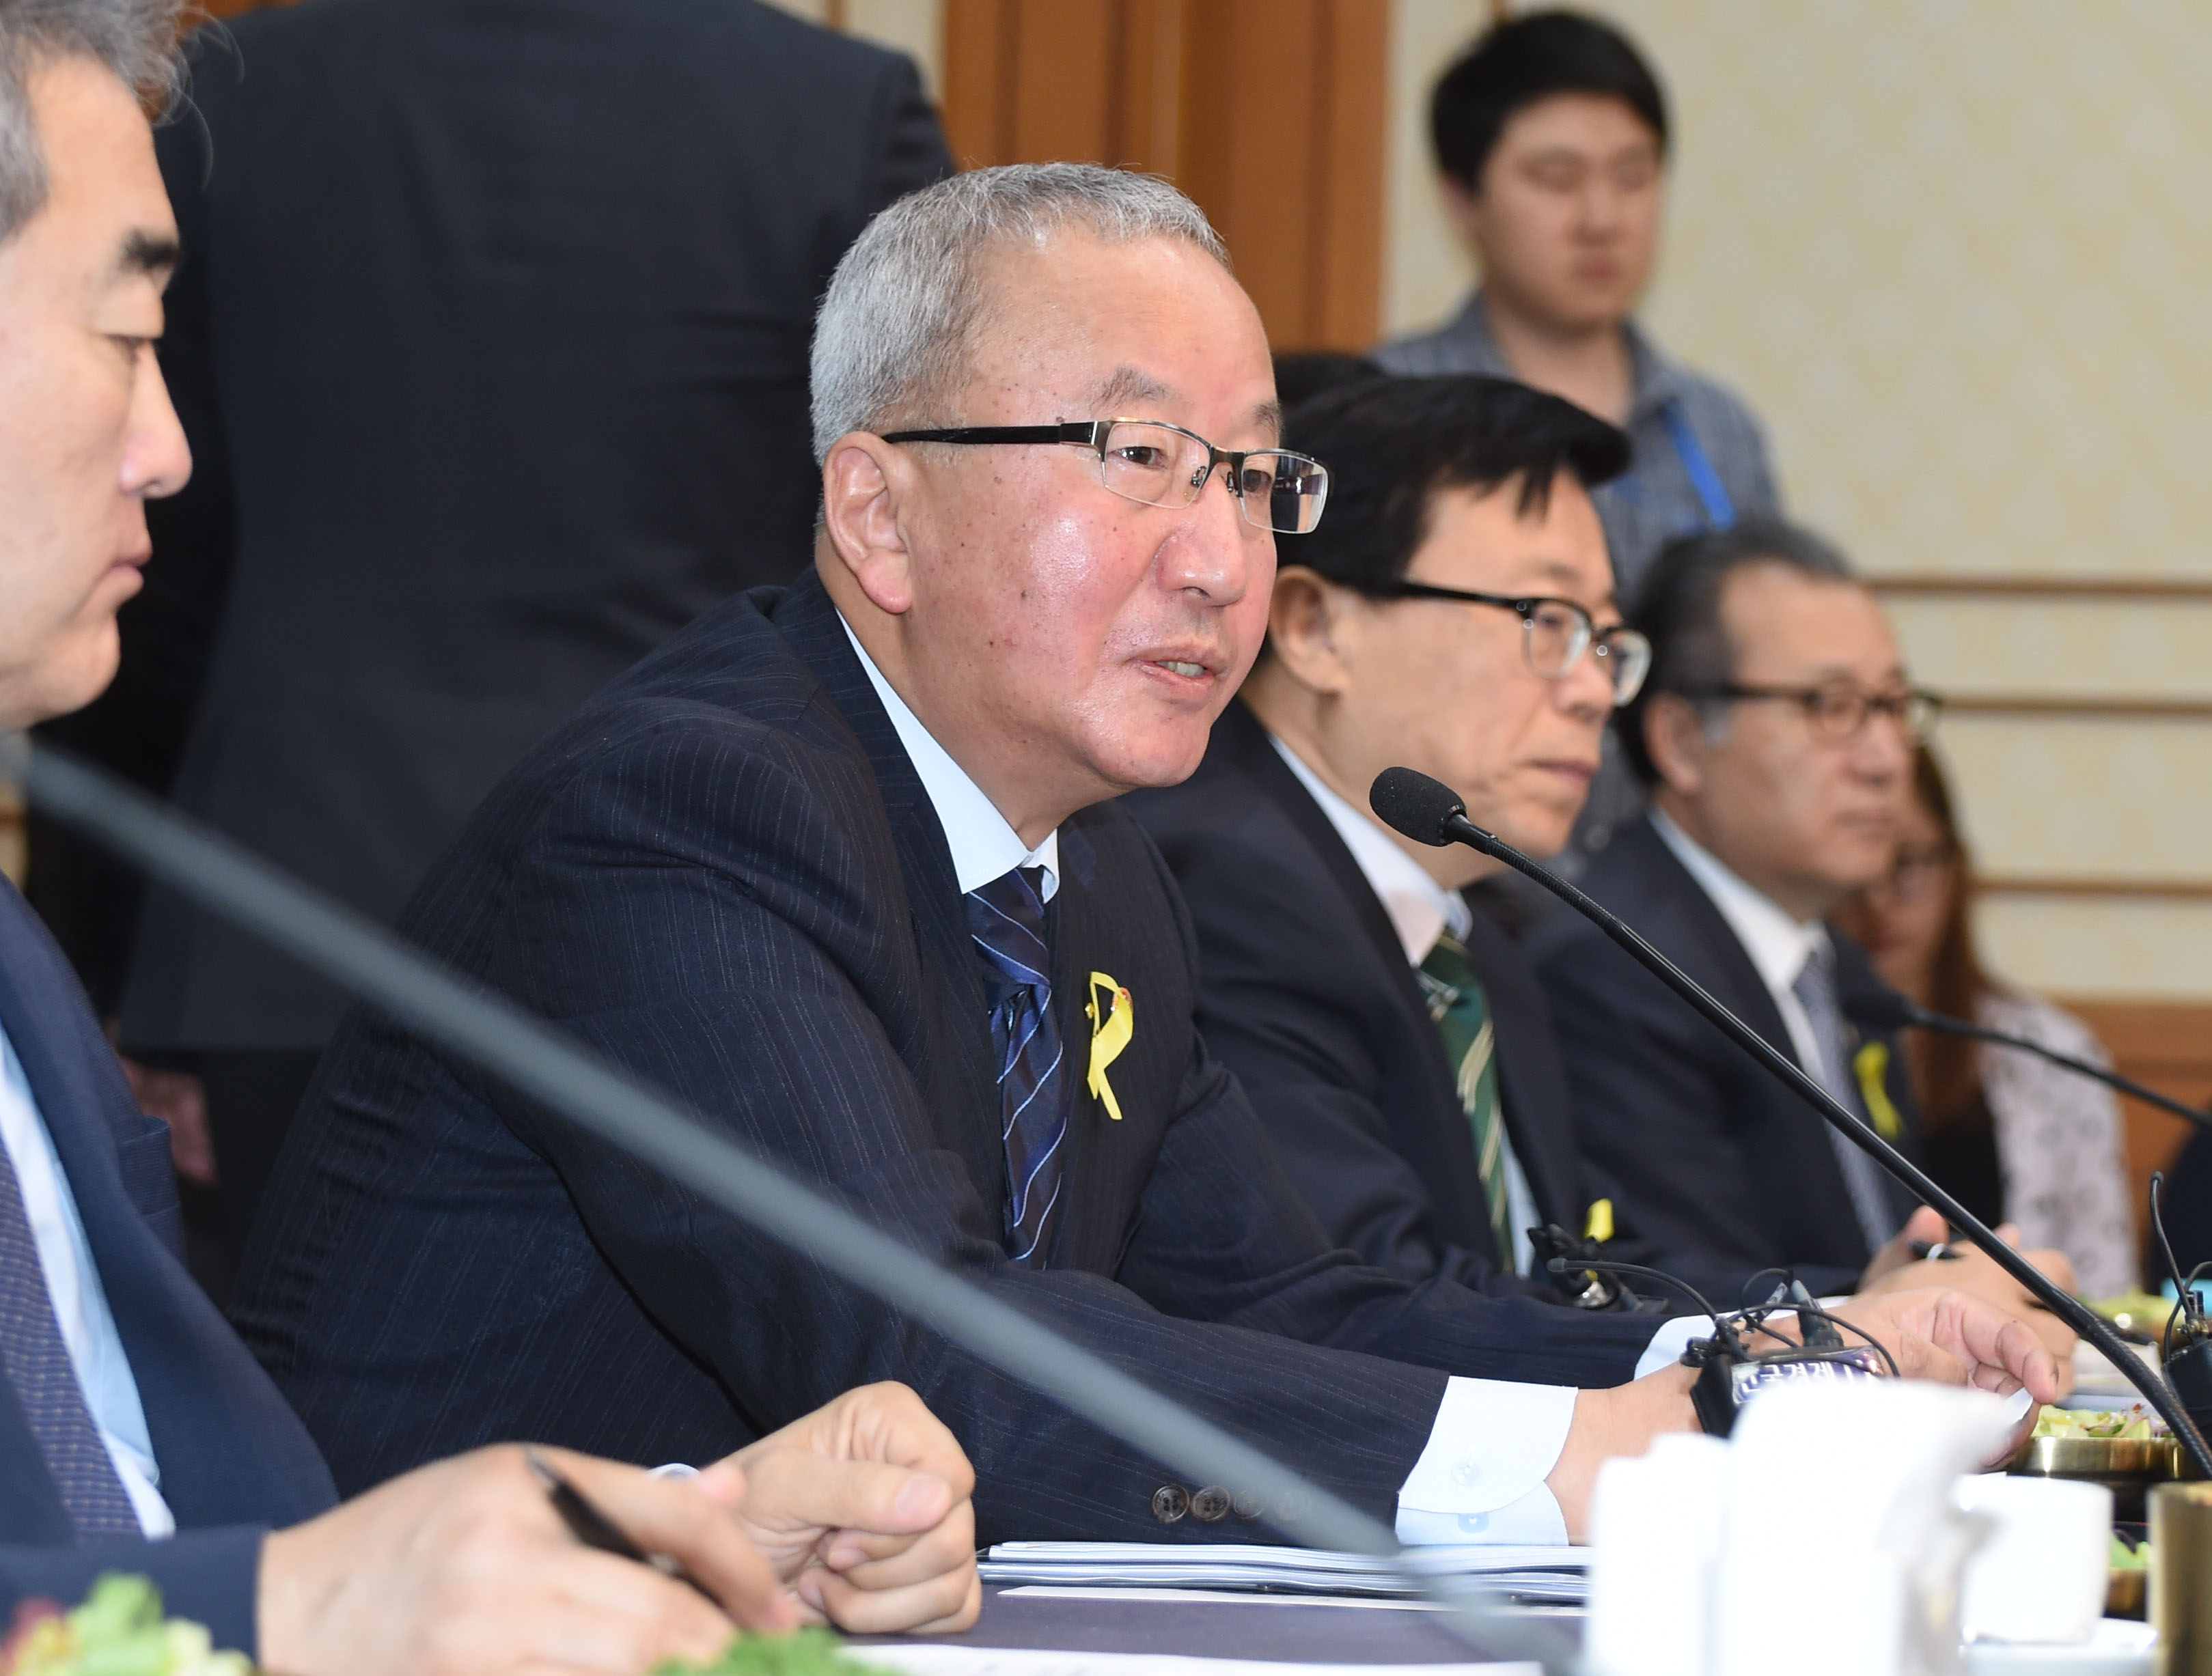 Deputy Prime Minister Hyun attends a high-ranking government official meeting on saving the working class